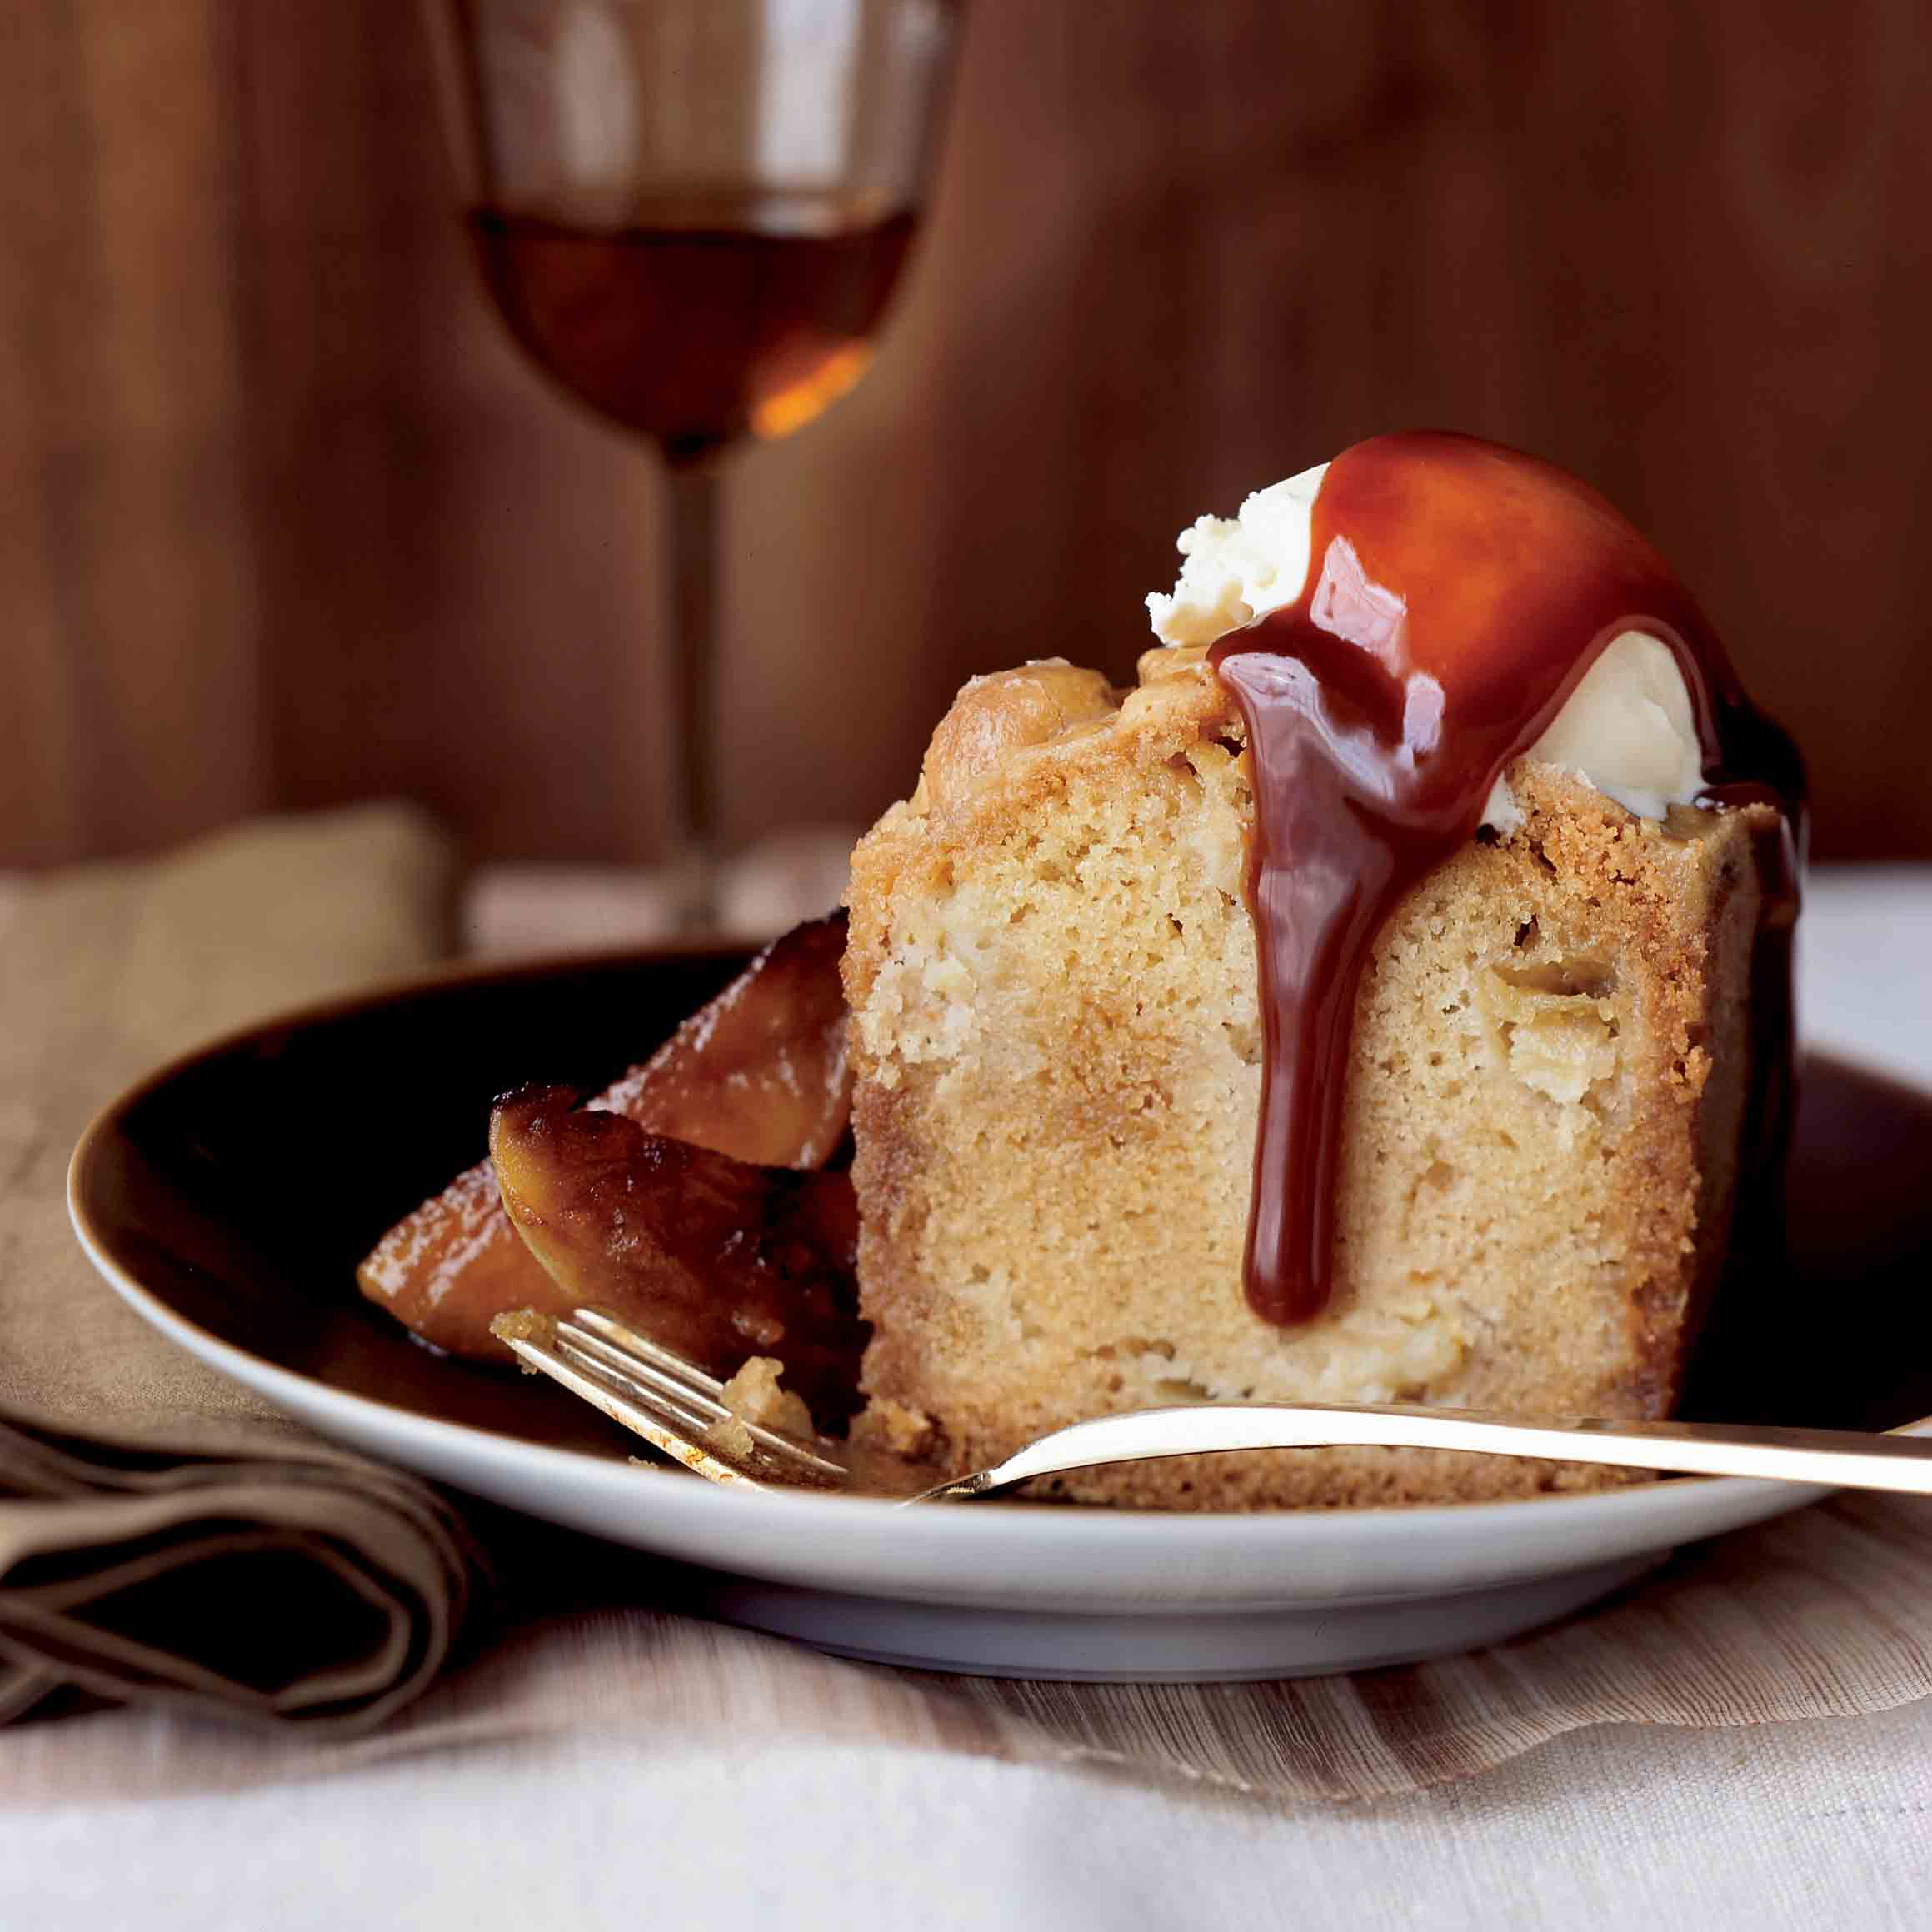 Why You Should Make This Apple Cake Now